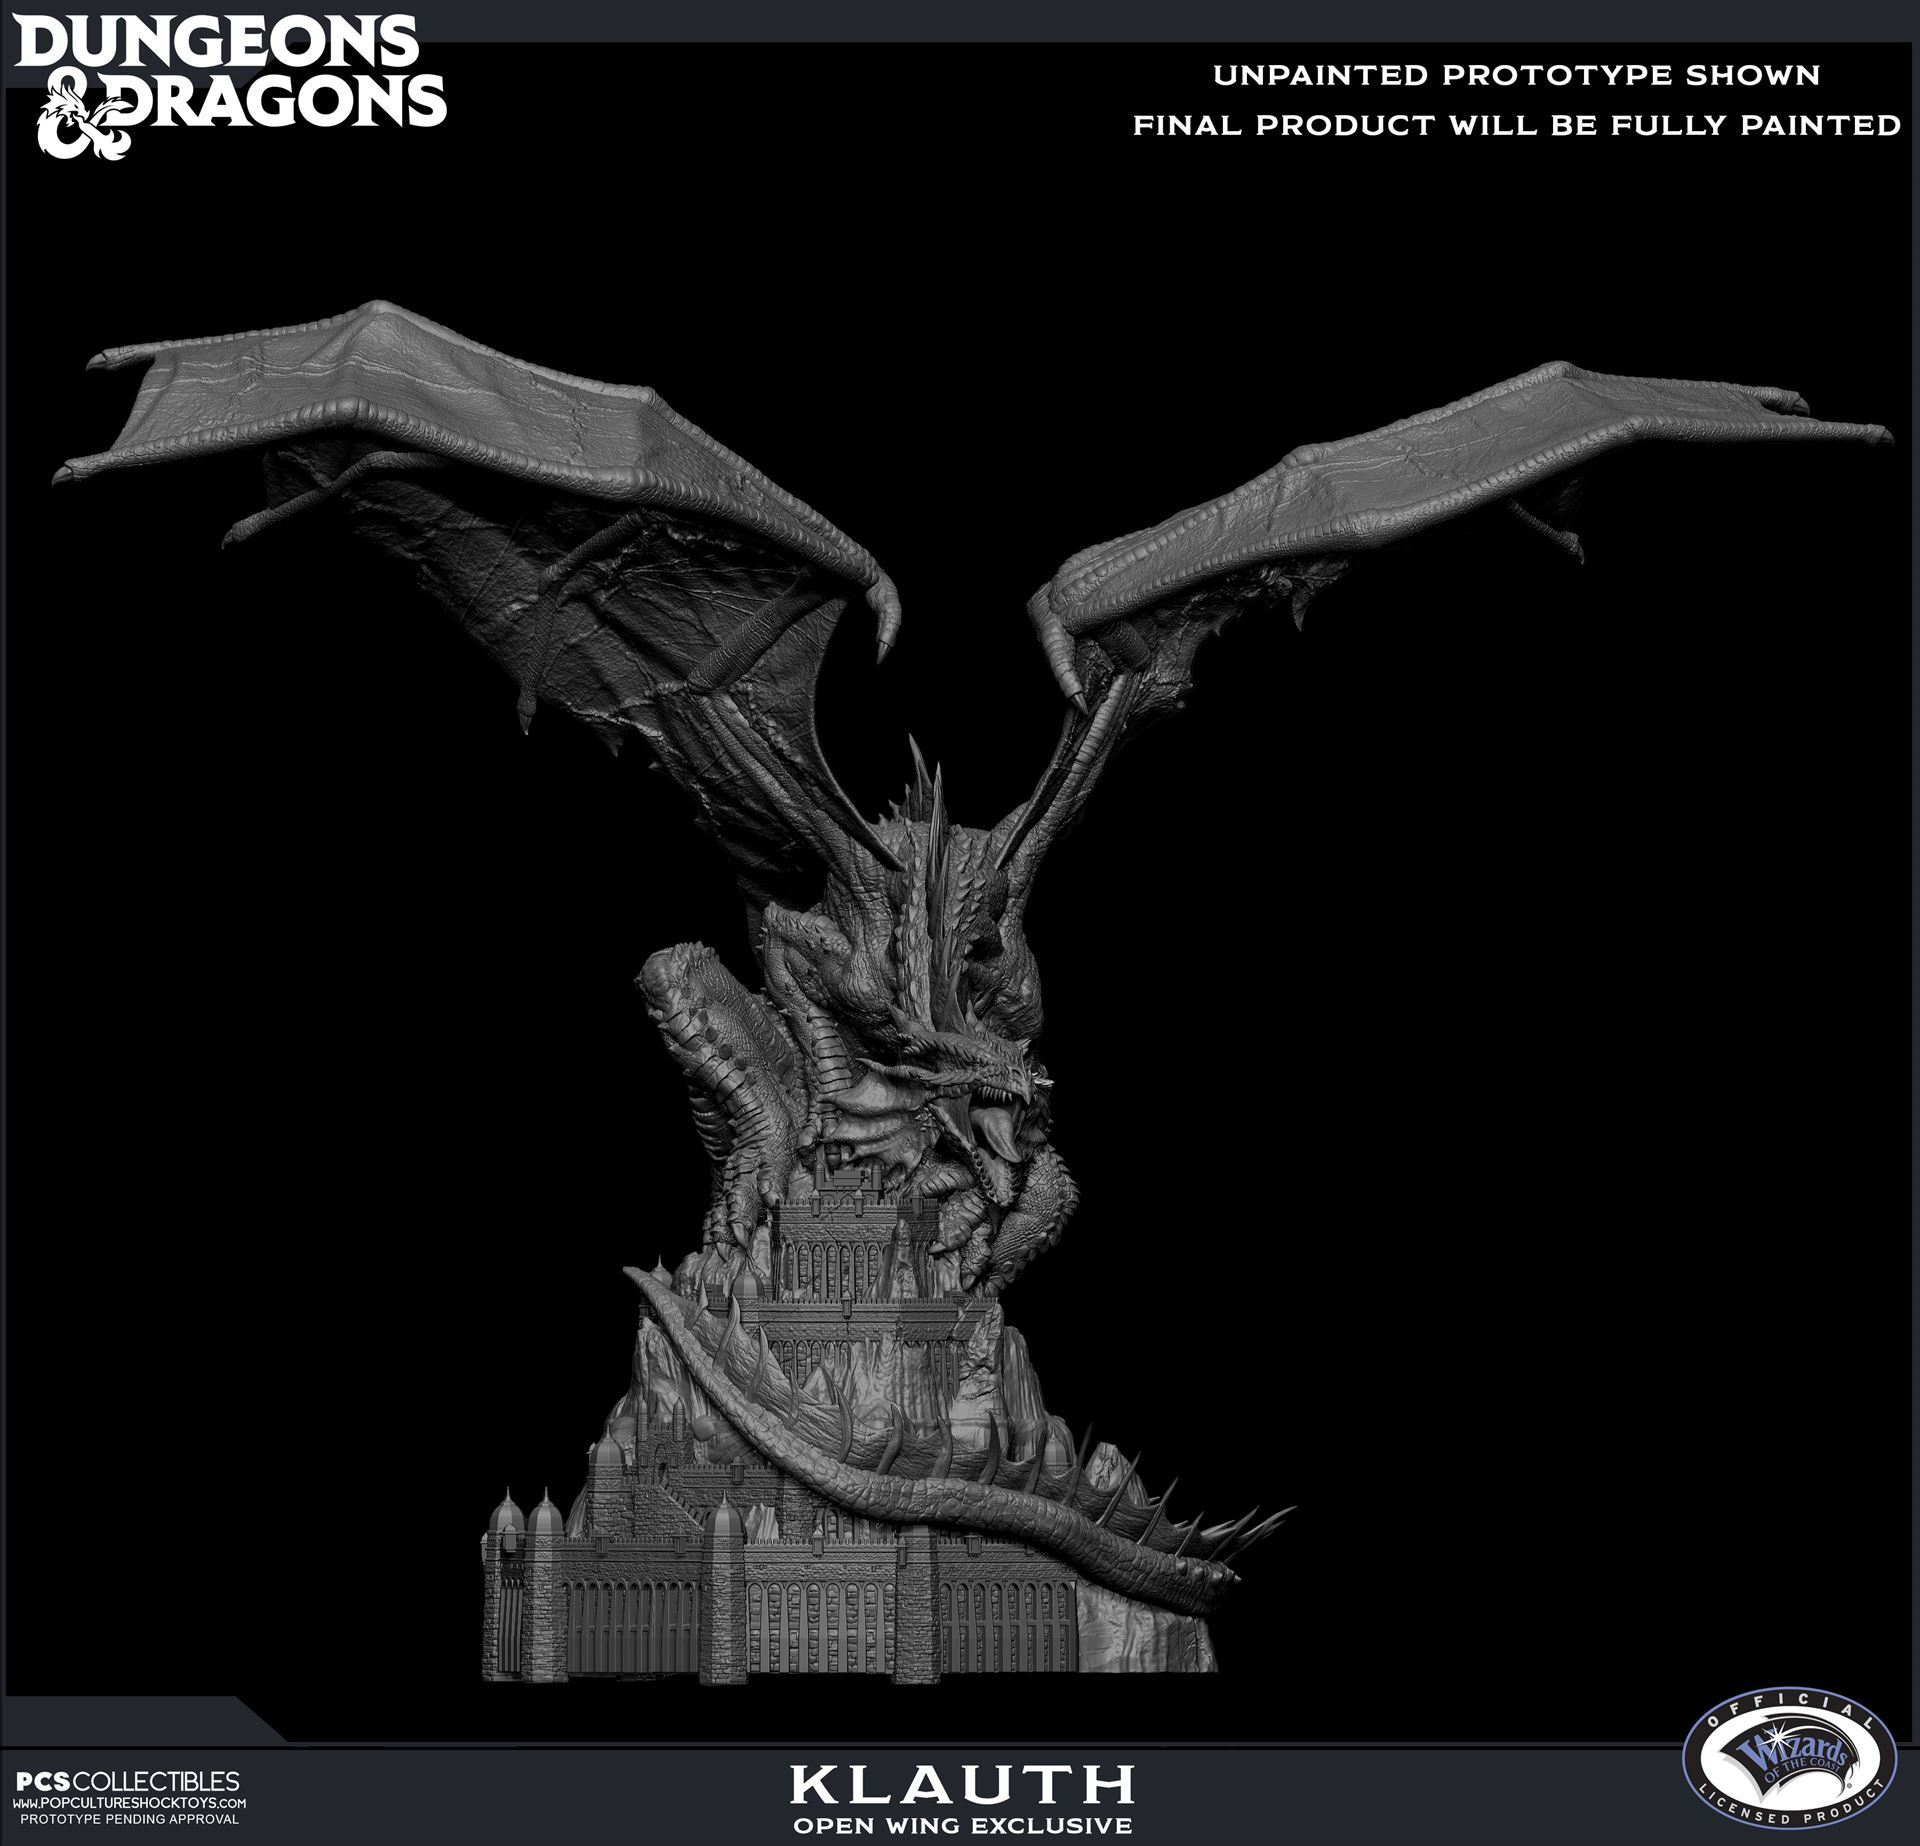 0006256_klauth-red-dragon-opened-wing-ex